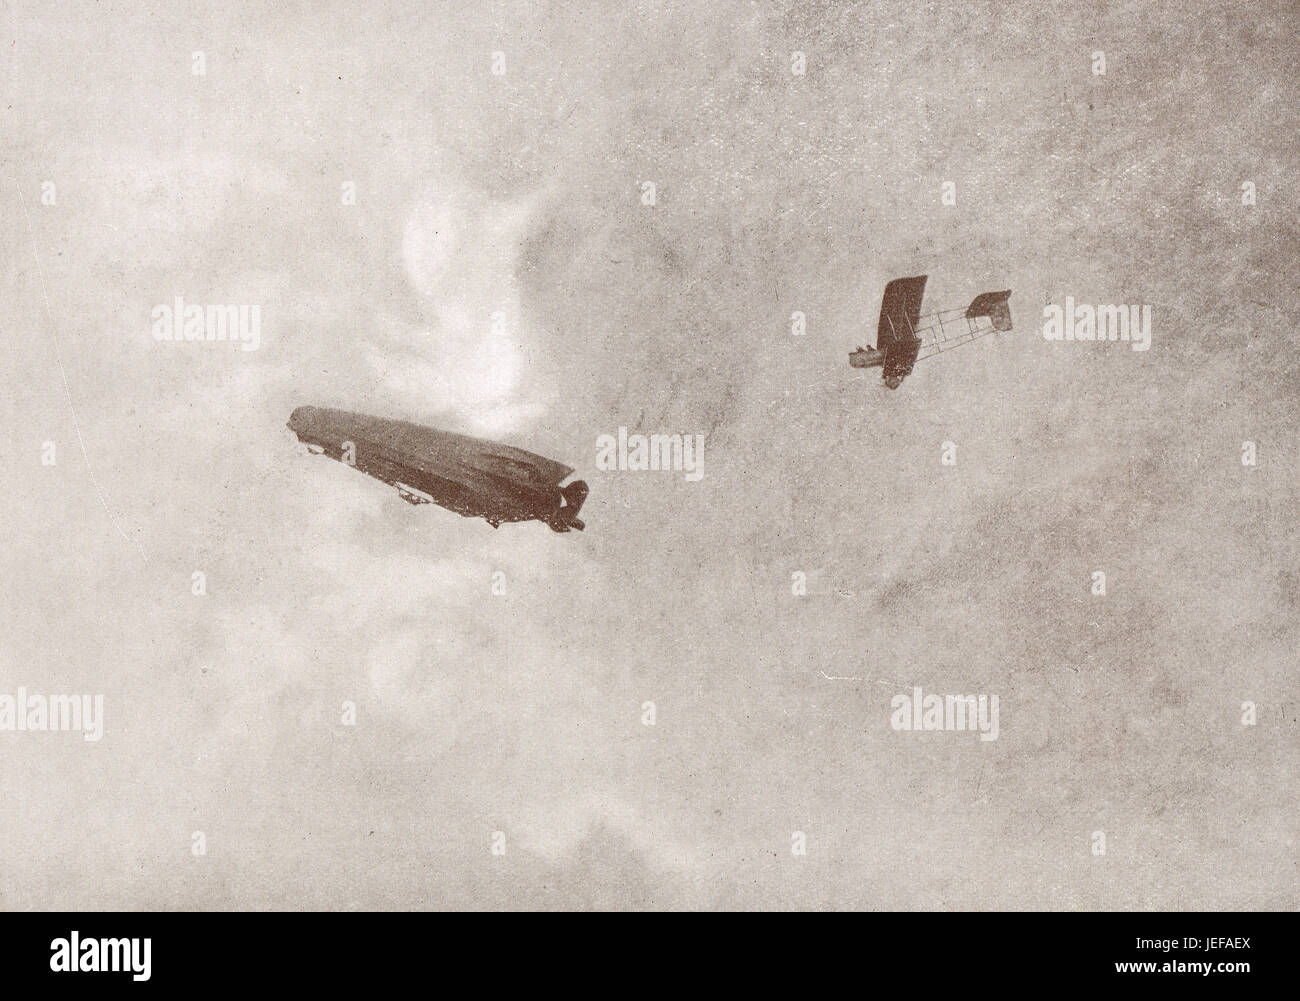 French Aeroplane pursuing a Zeppelin that has just bombed Paris, March 1915 - Stock Image